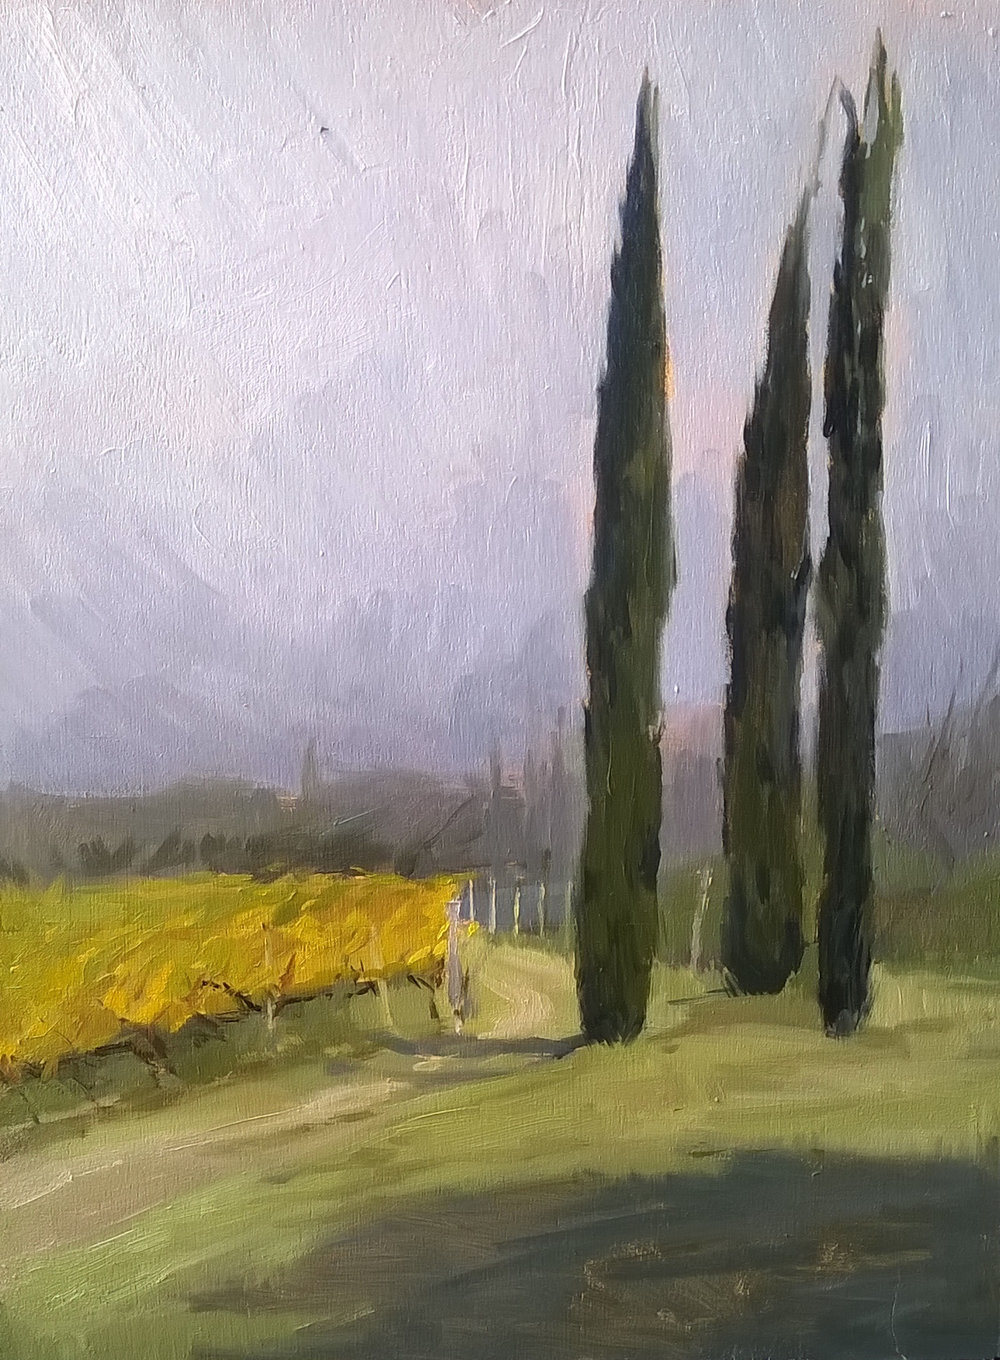 'Foggy mornings' 30 cm by 40 cm Oil on panel